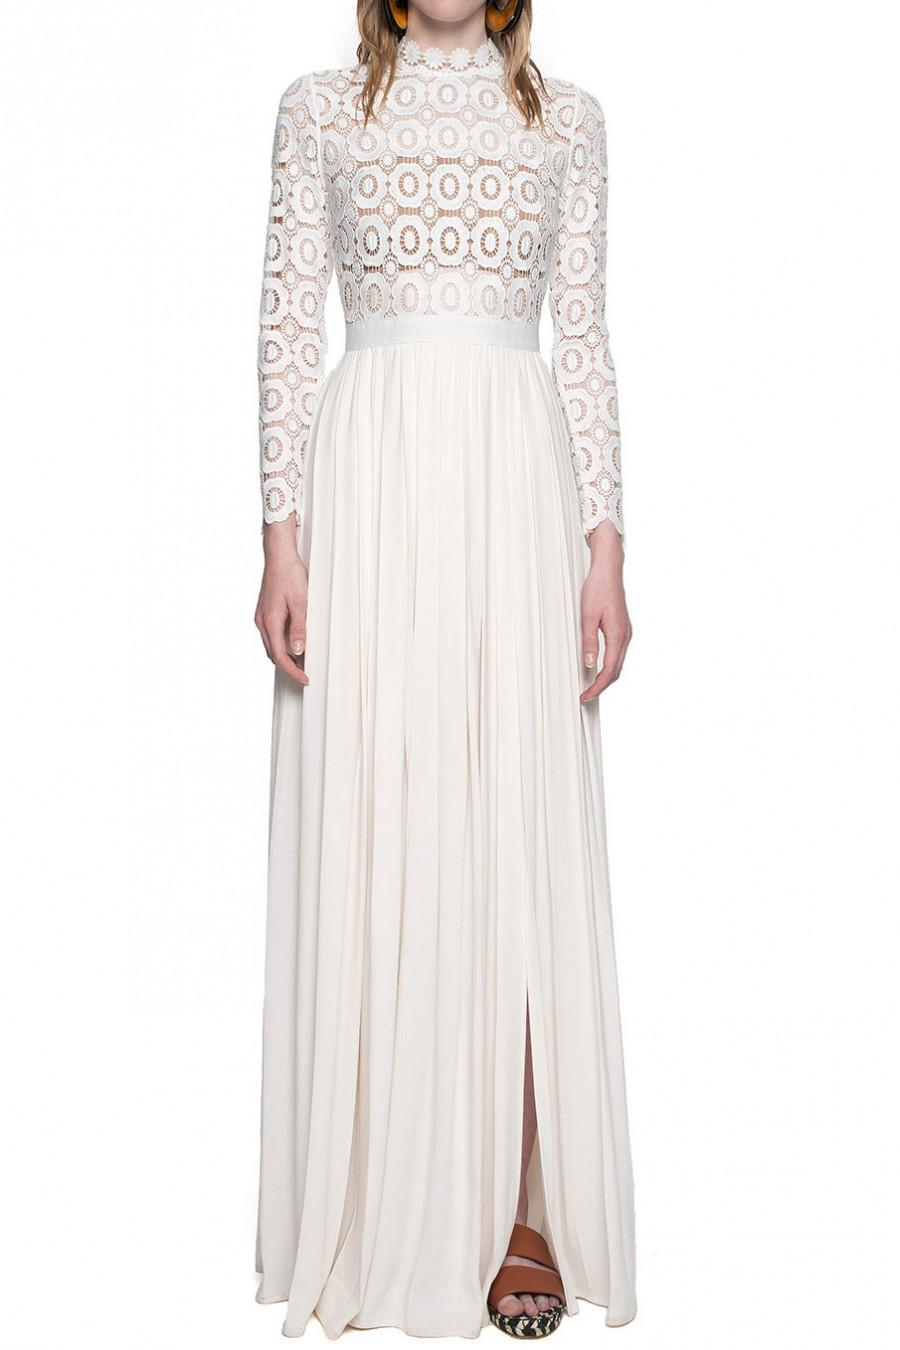 Self Portrait Pleated Crochet Floral Maxi Dress Off White